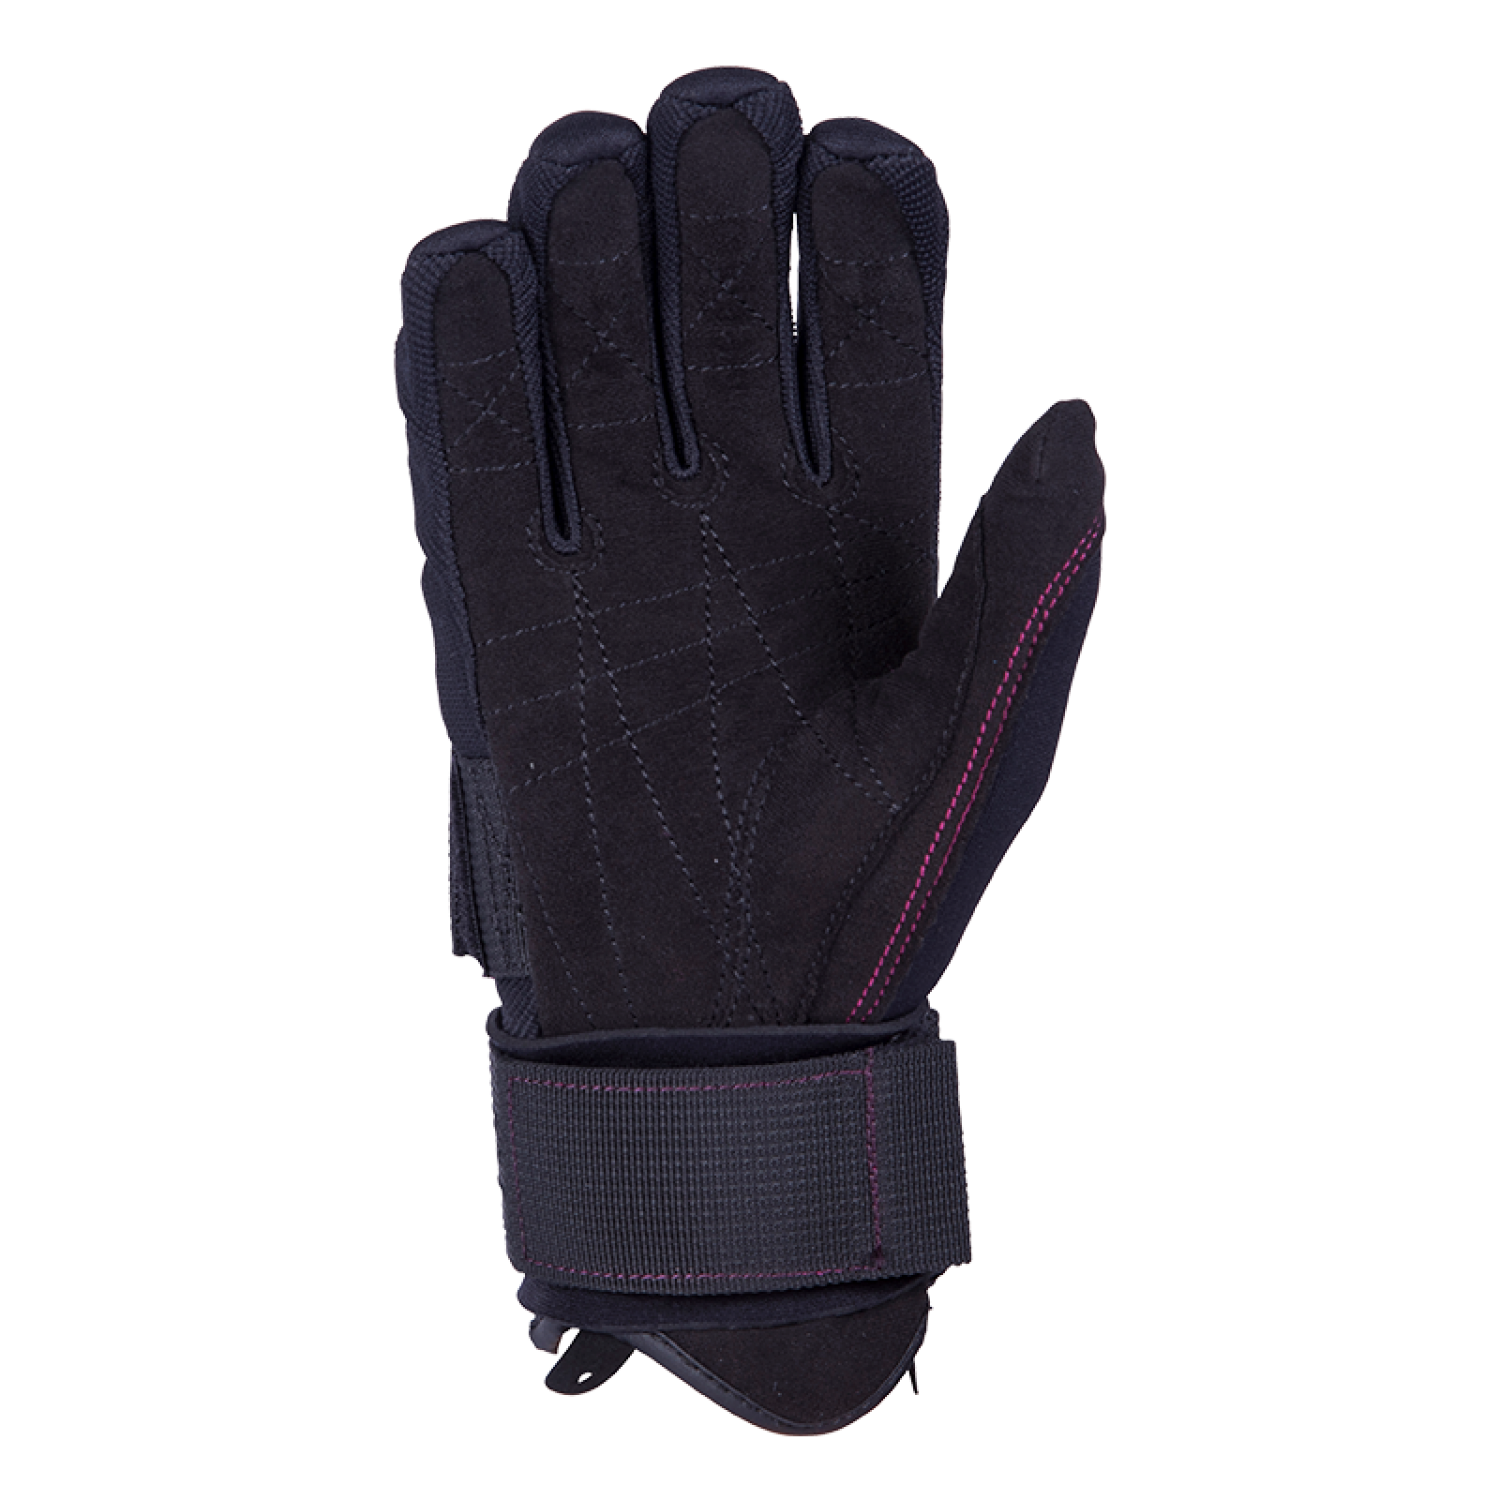 Womens leather gloves ho. Mittens clipart ski glove